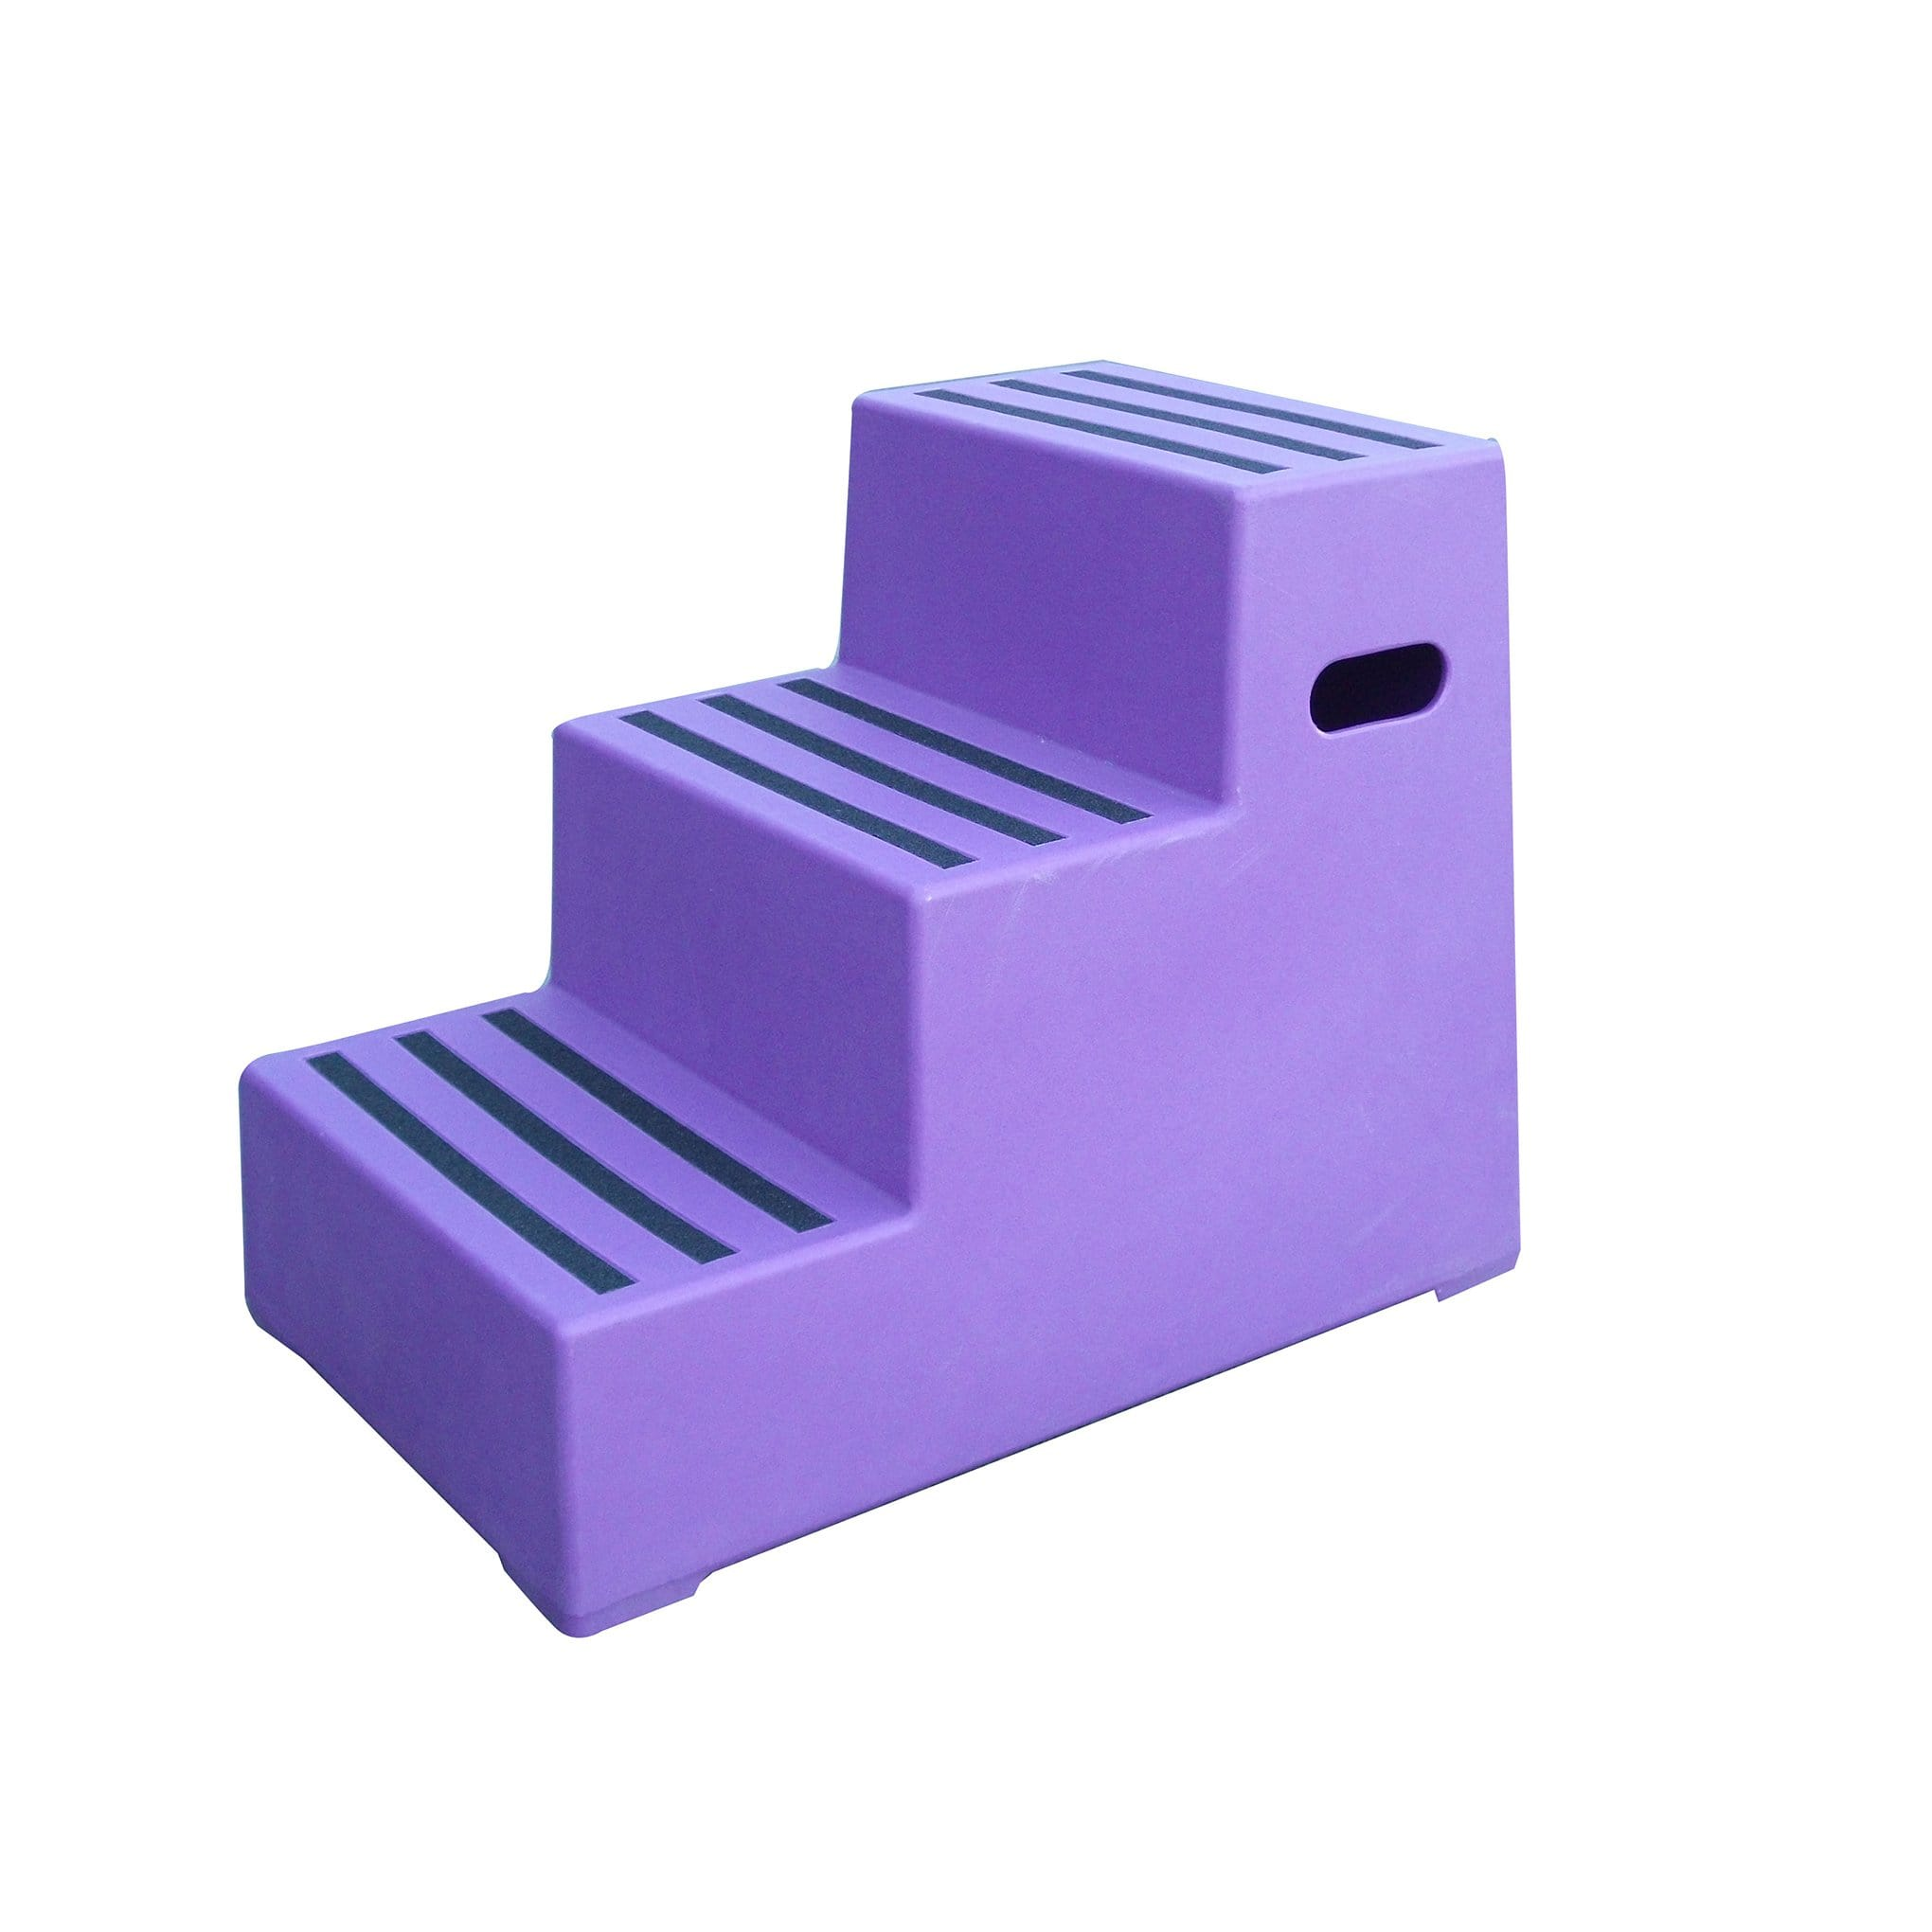 Classic Showjumps Premium Three Tread Mounting Block in Purple